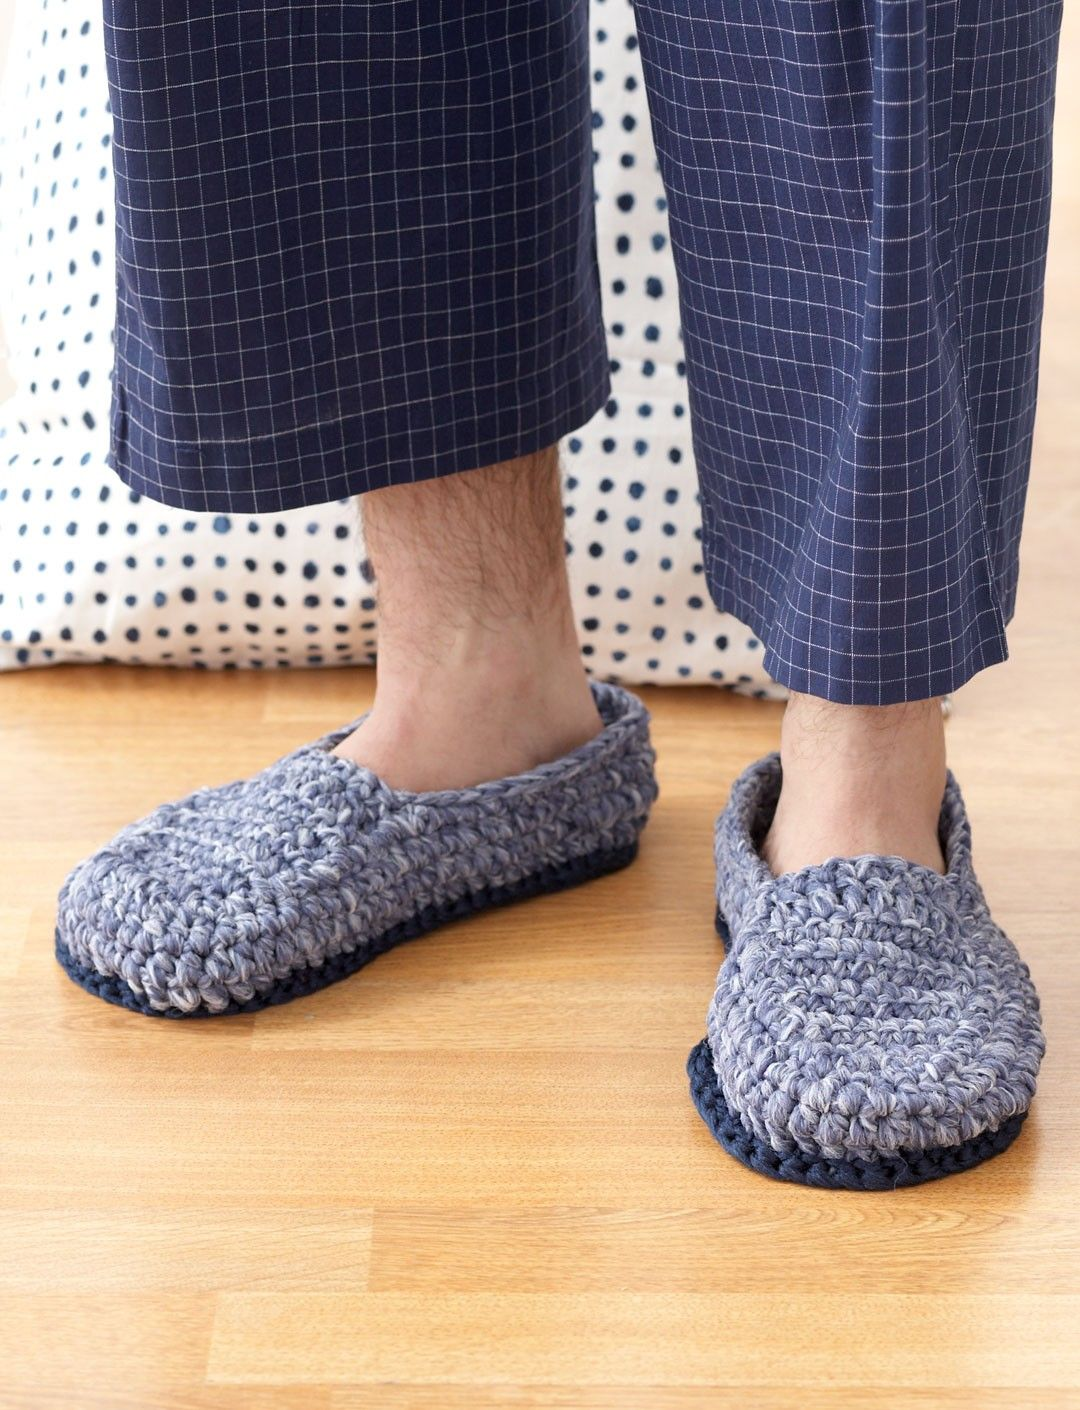 10+ Free Men\'s Crochet Patterns for Holiday Gift Ideas | Botas ...